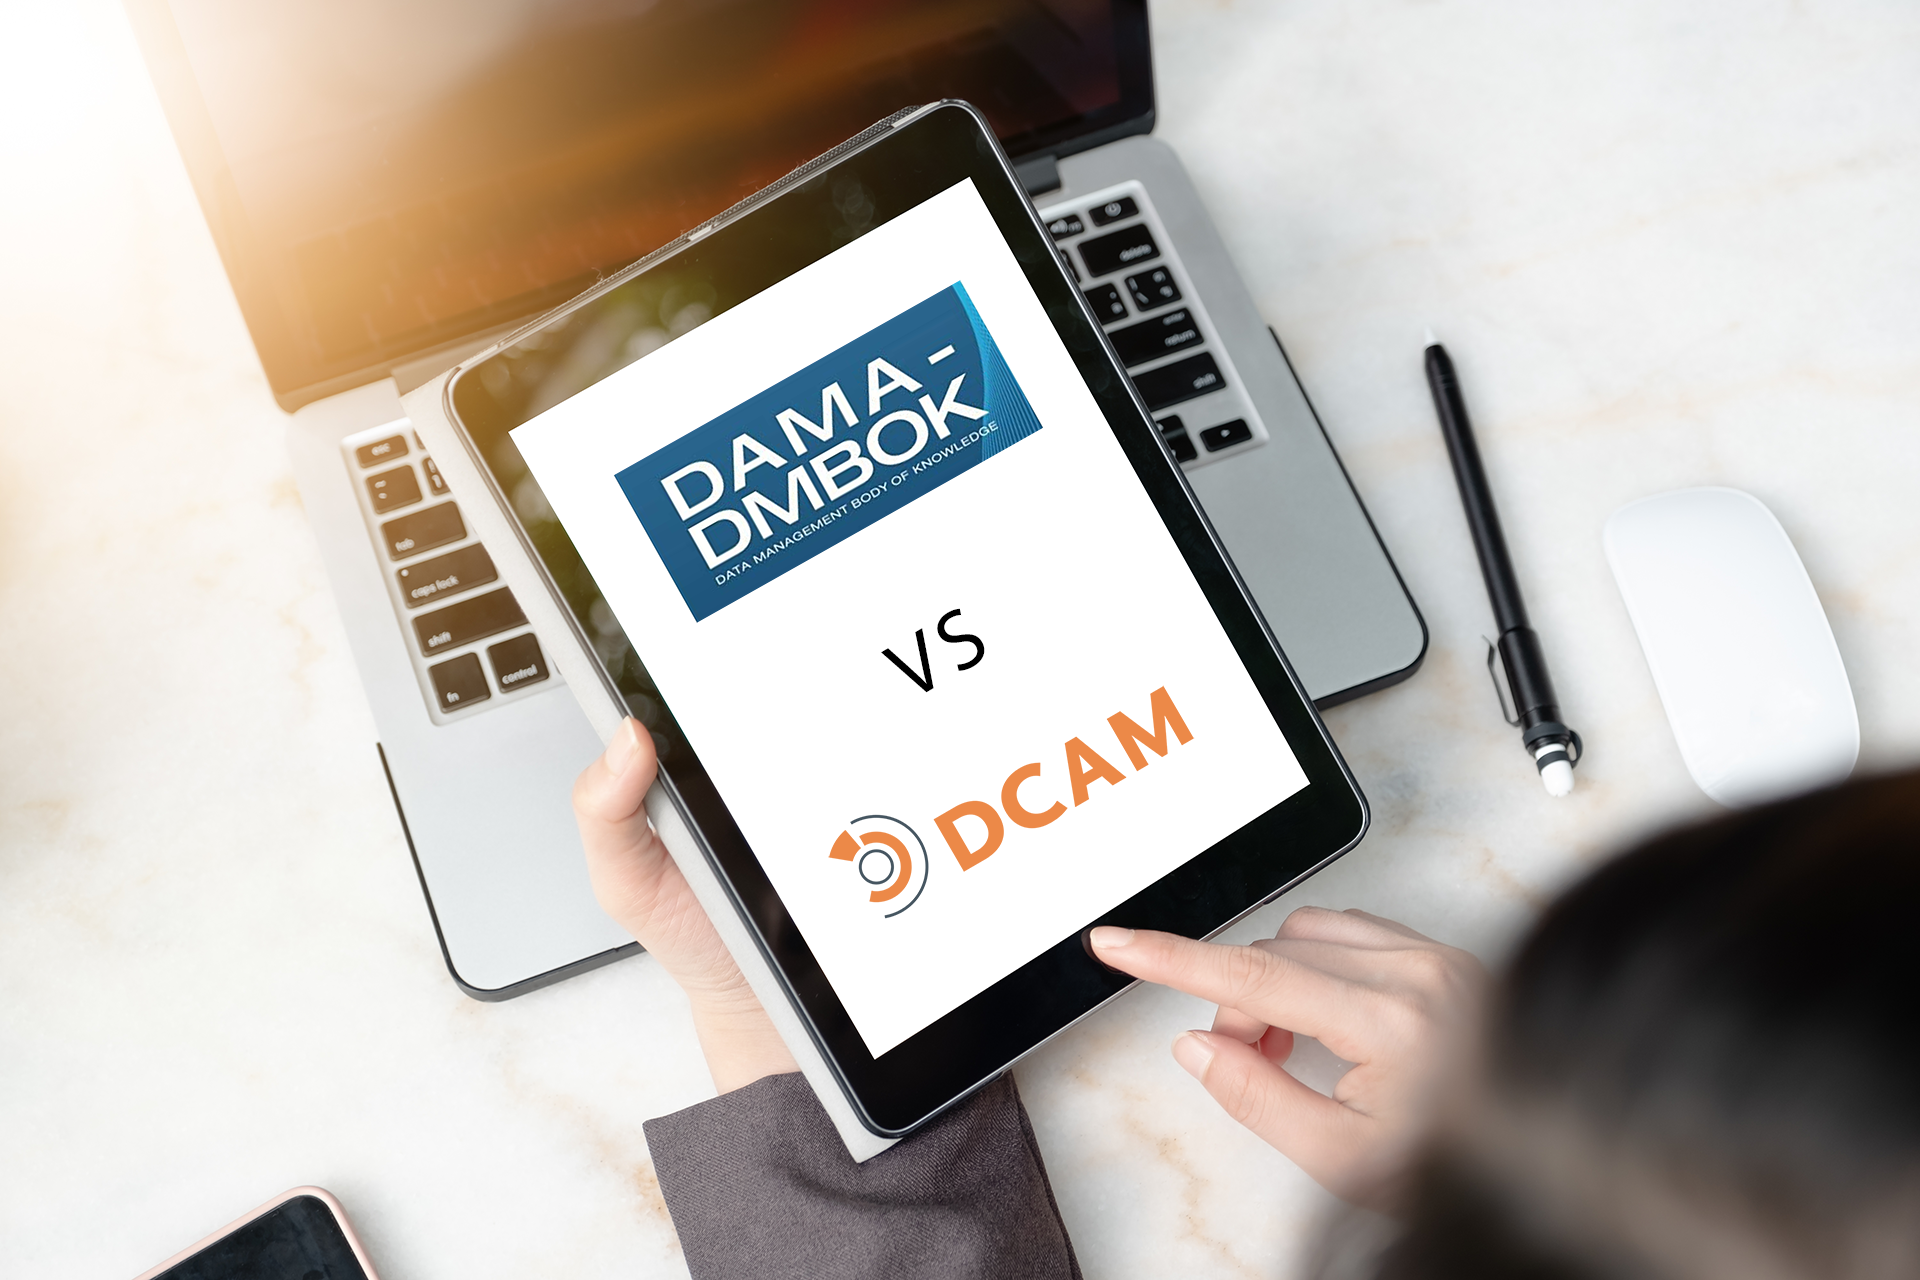 DAMA-DMBOK and DCAM discrepancies